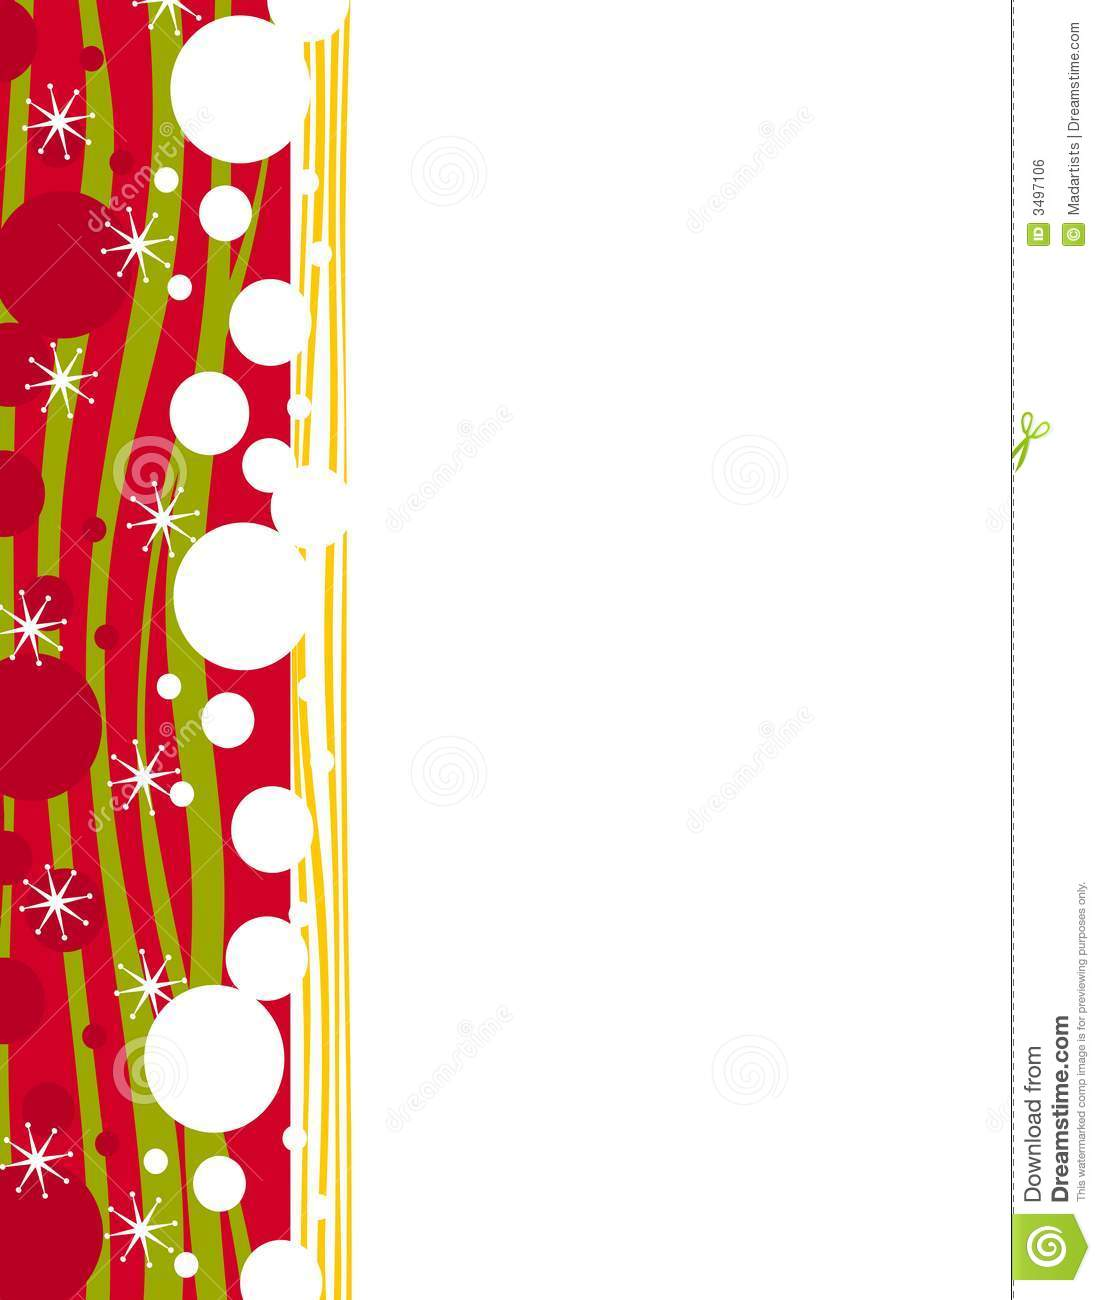 Christmas Page Border.Decorative Xmas Page Border Stock Illustration